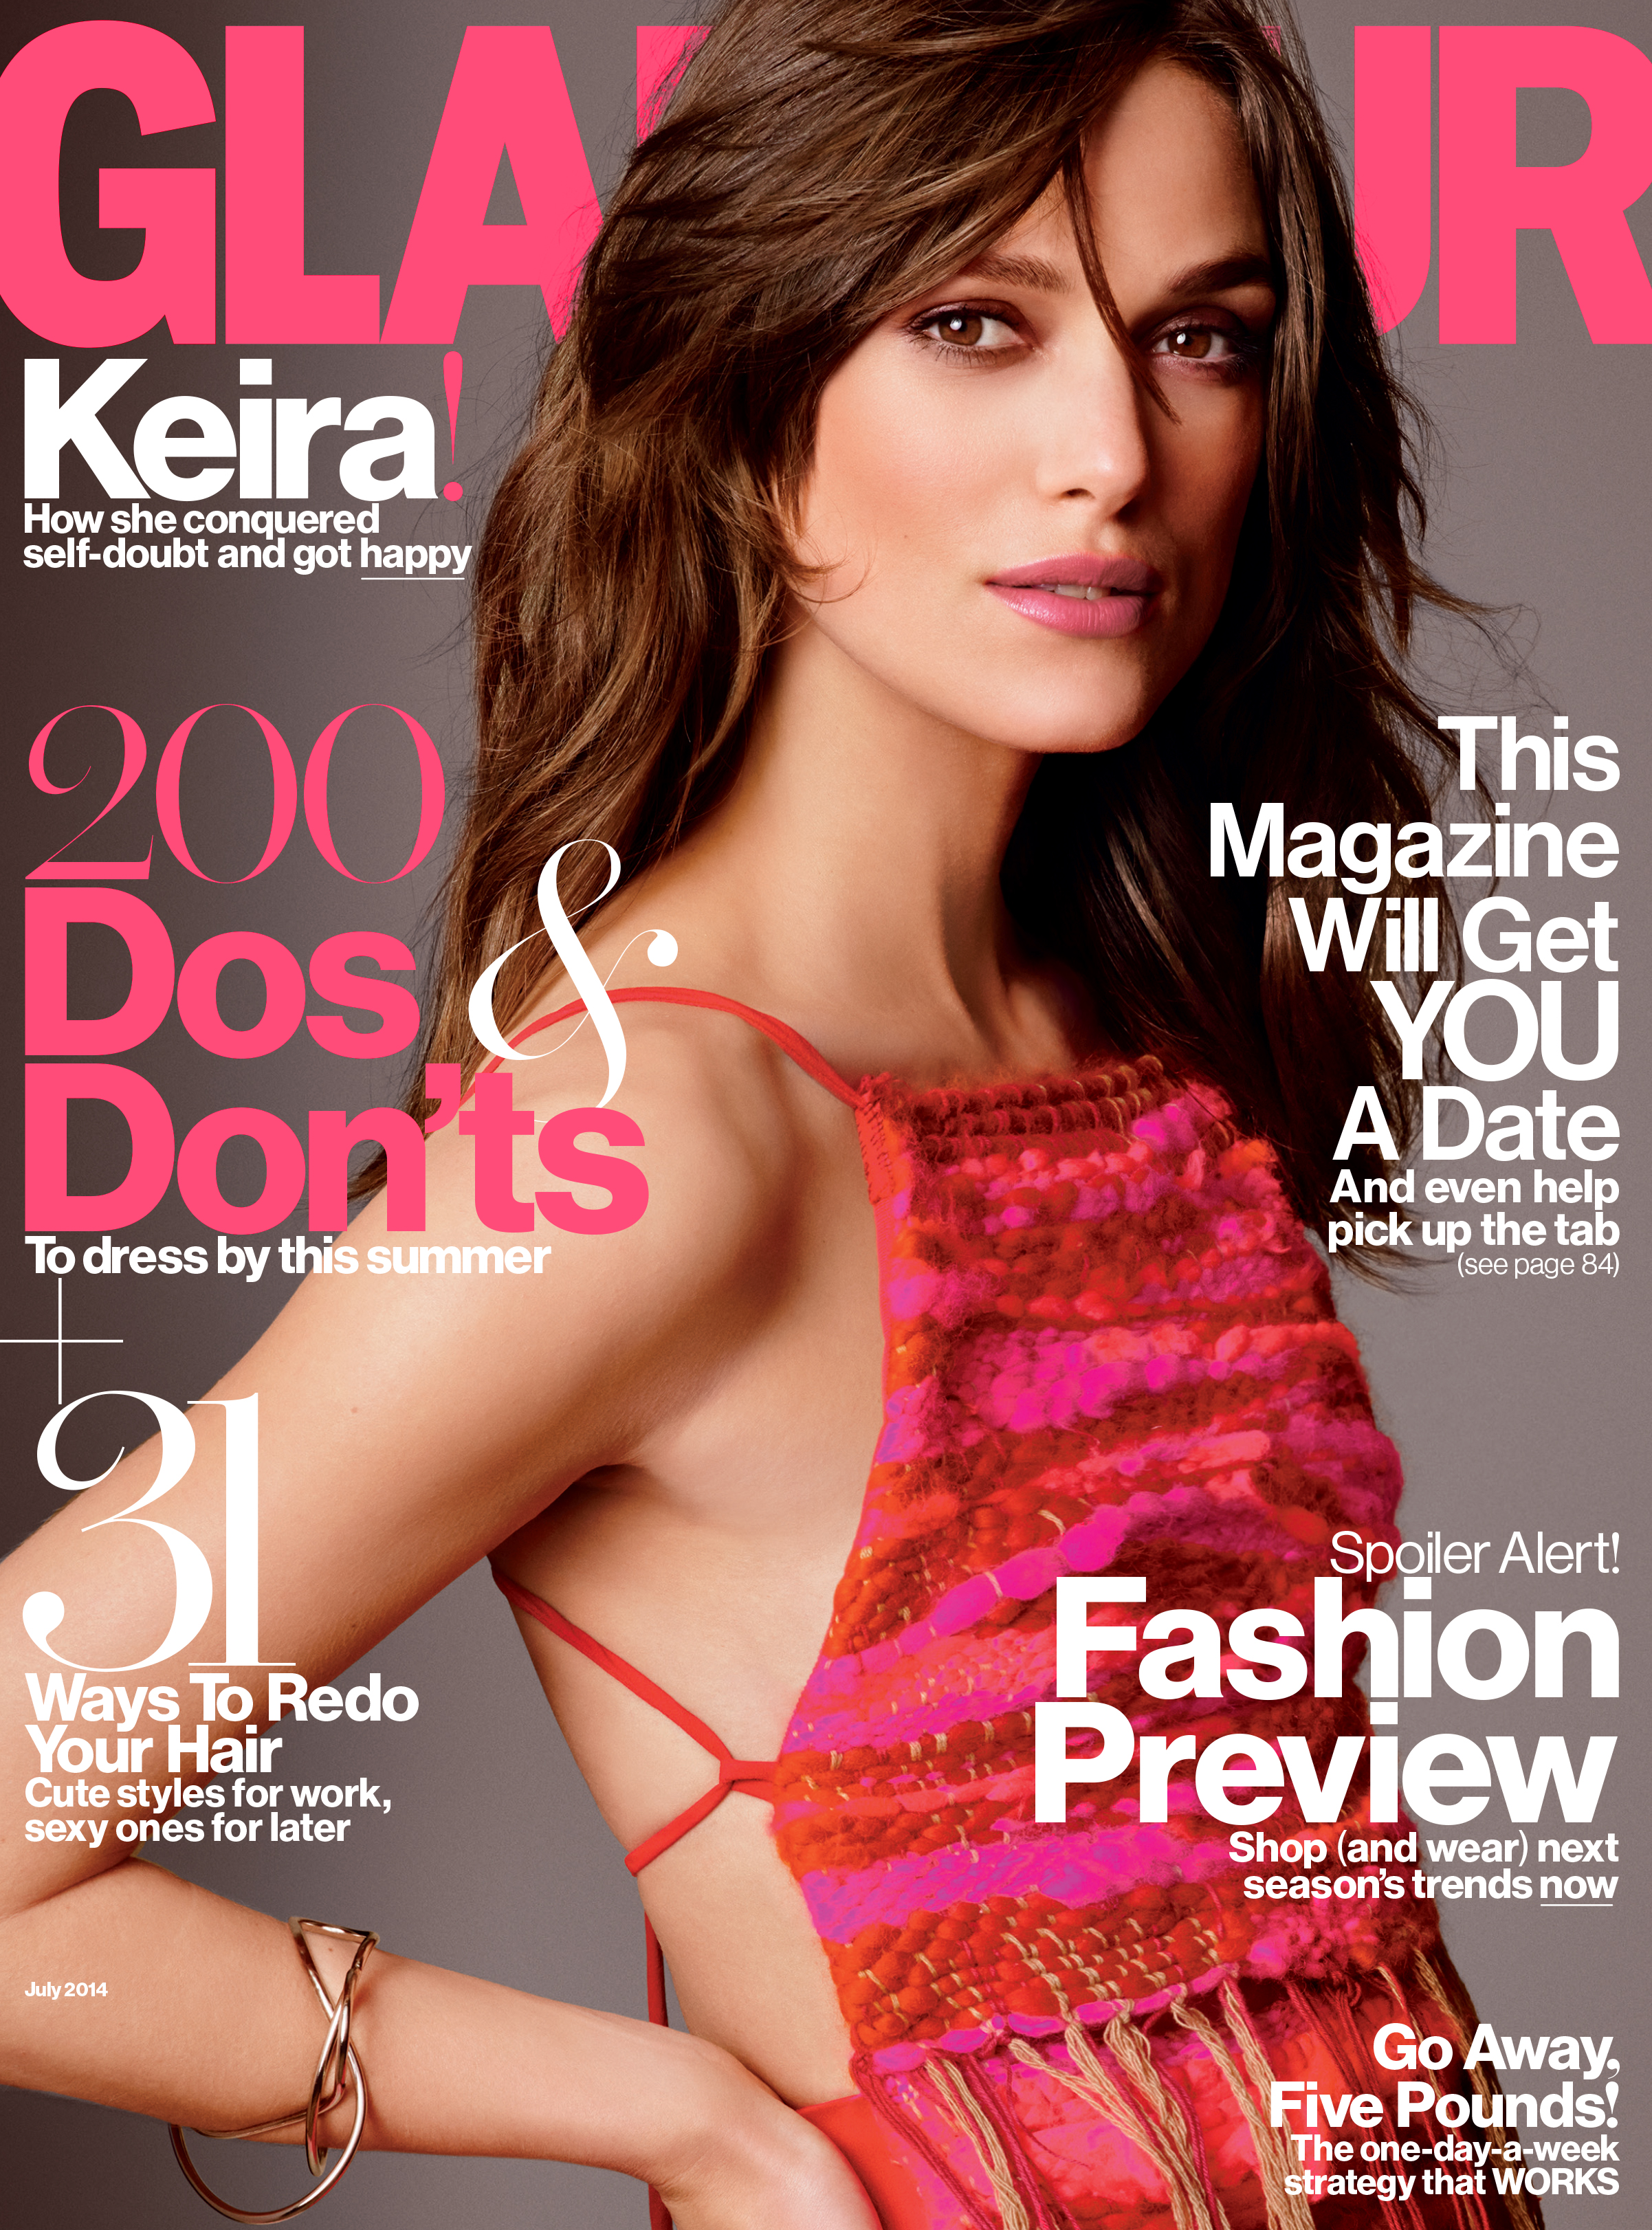 Keira Knightley's sultry Glamour cover